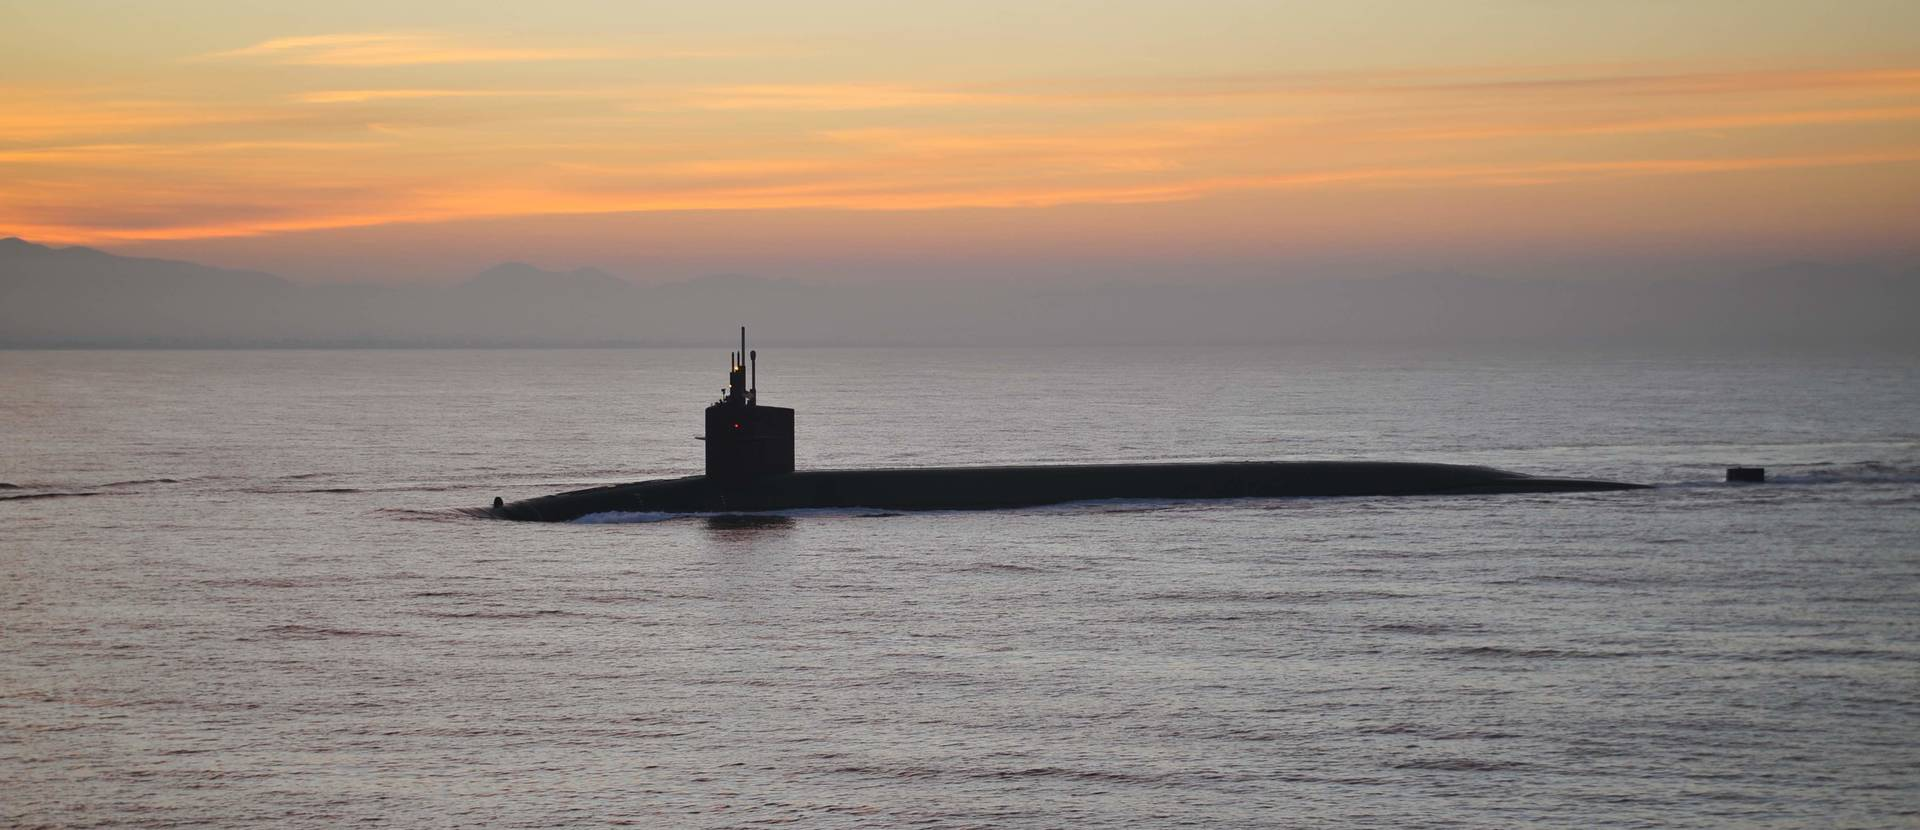 News - U.S. Navy Extends General Dynamics Fire Control Systems Work for US and UK SSBN Submarines